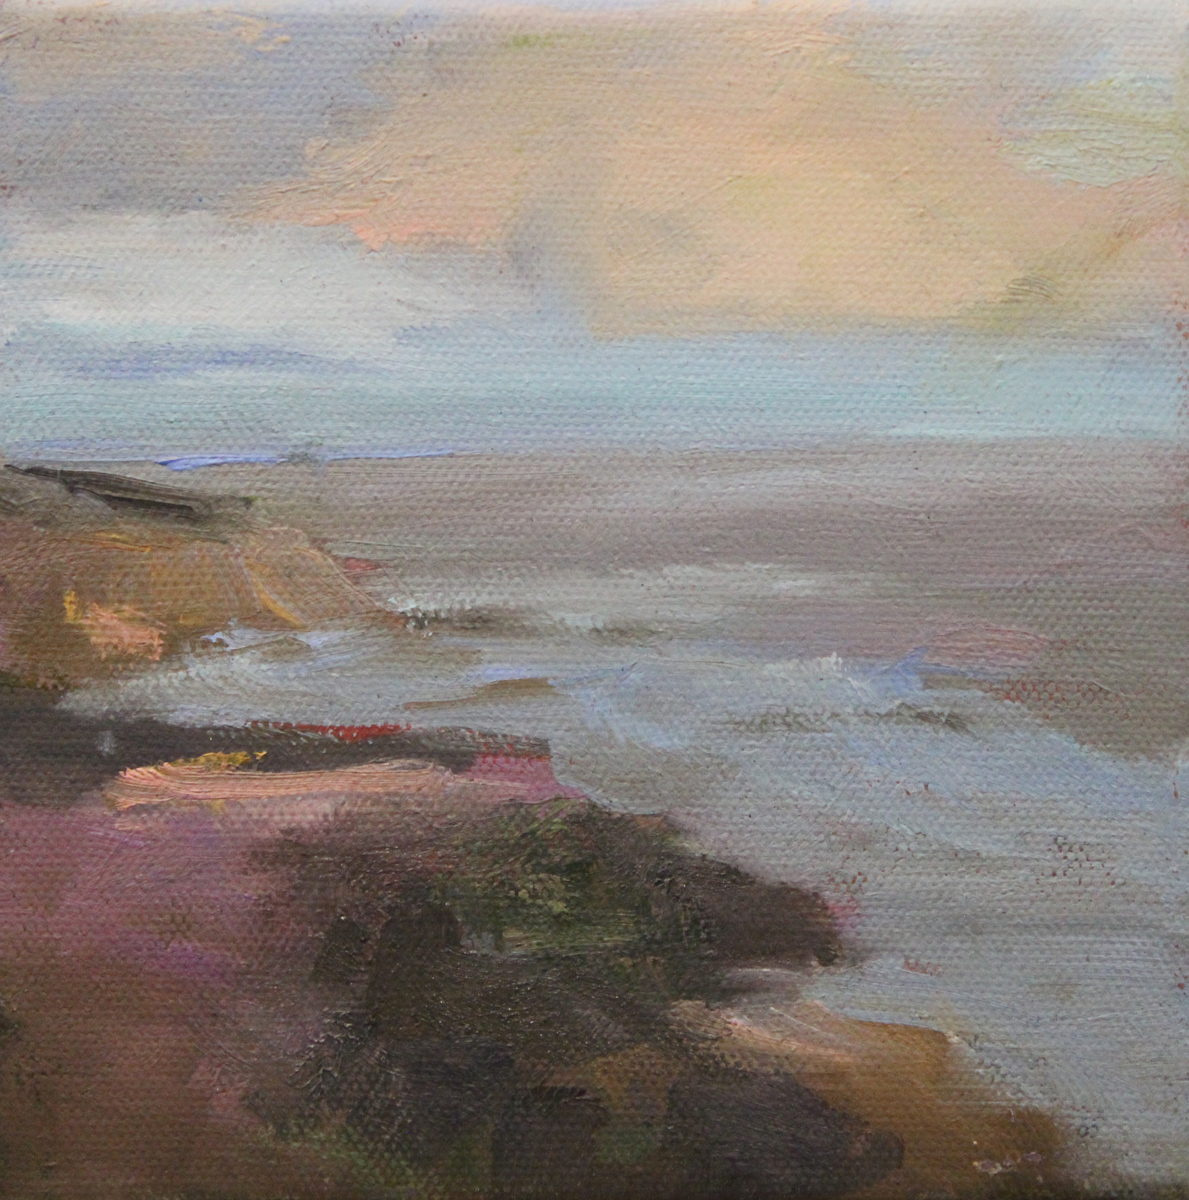 Crystal cove (large view)